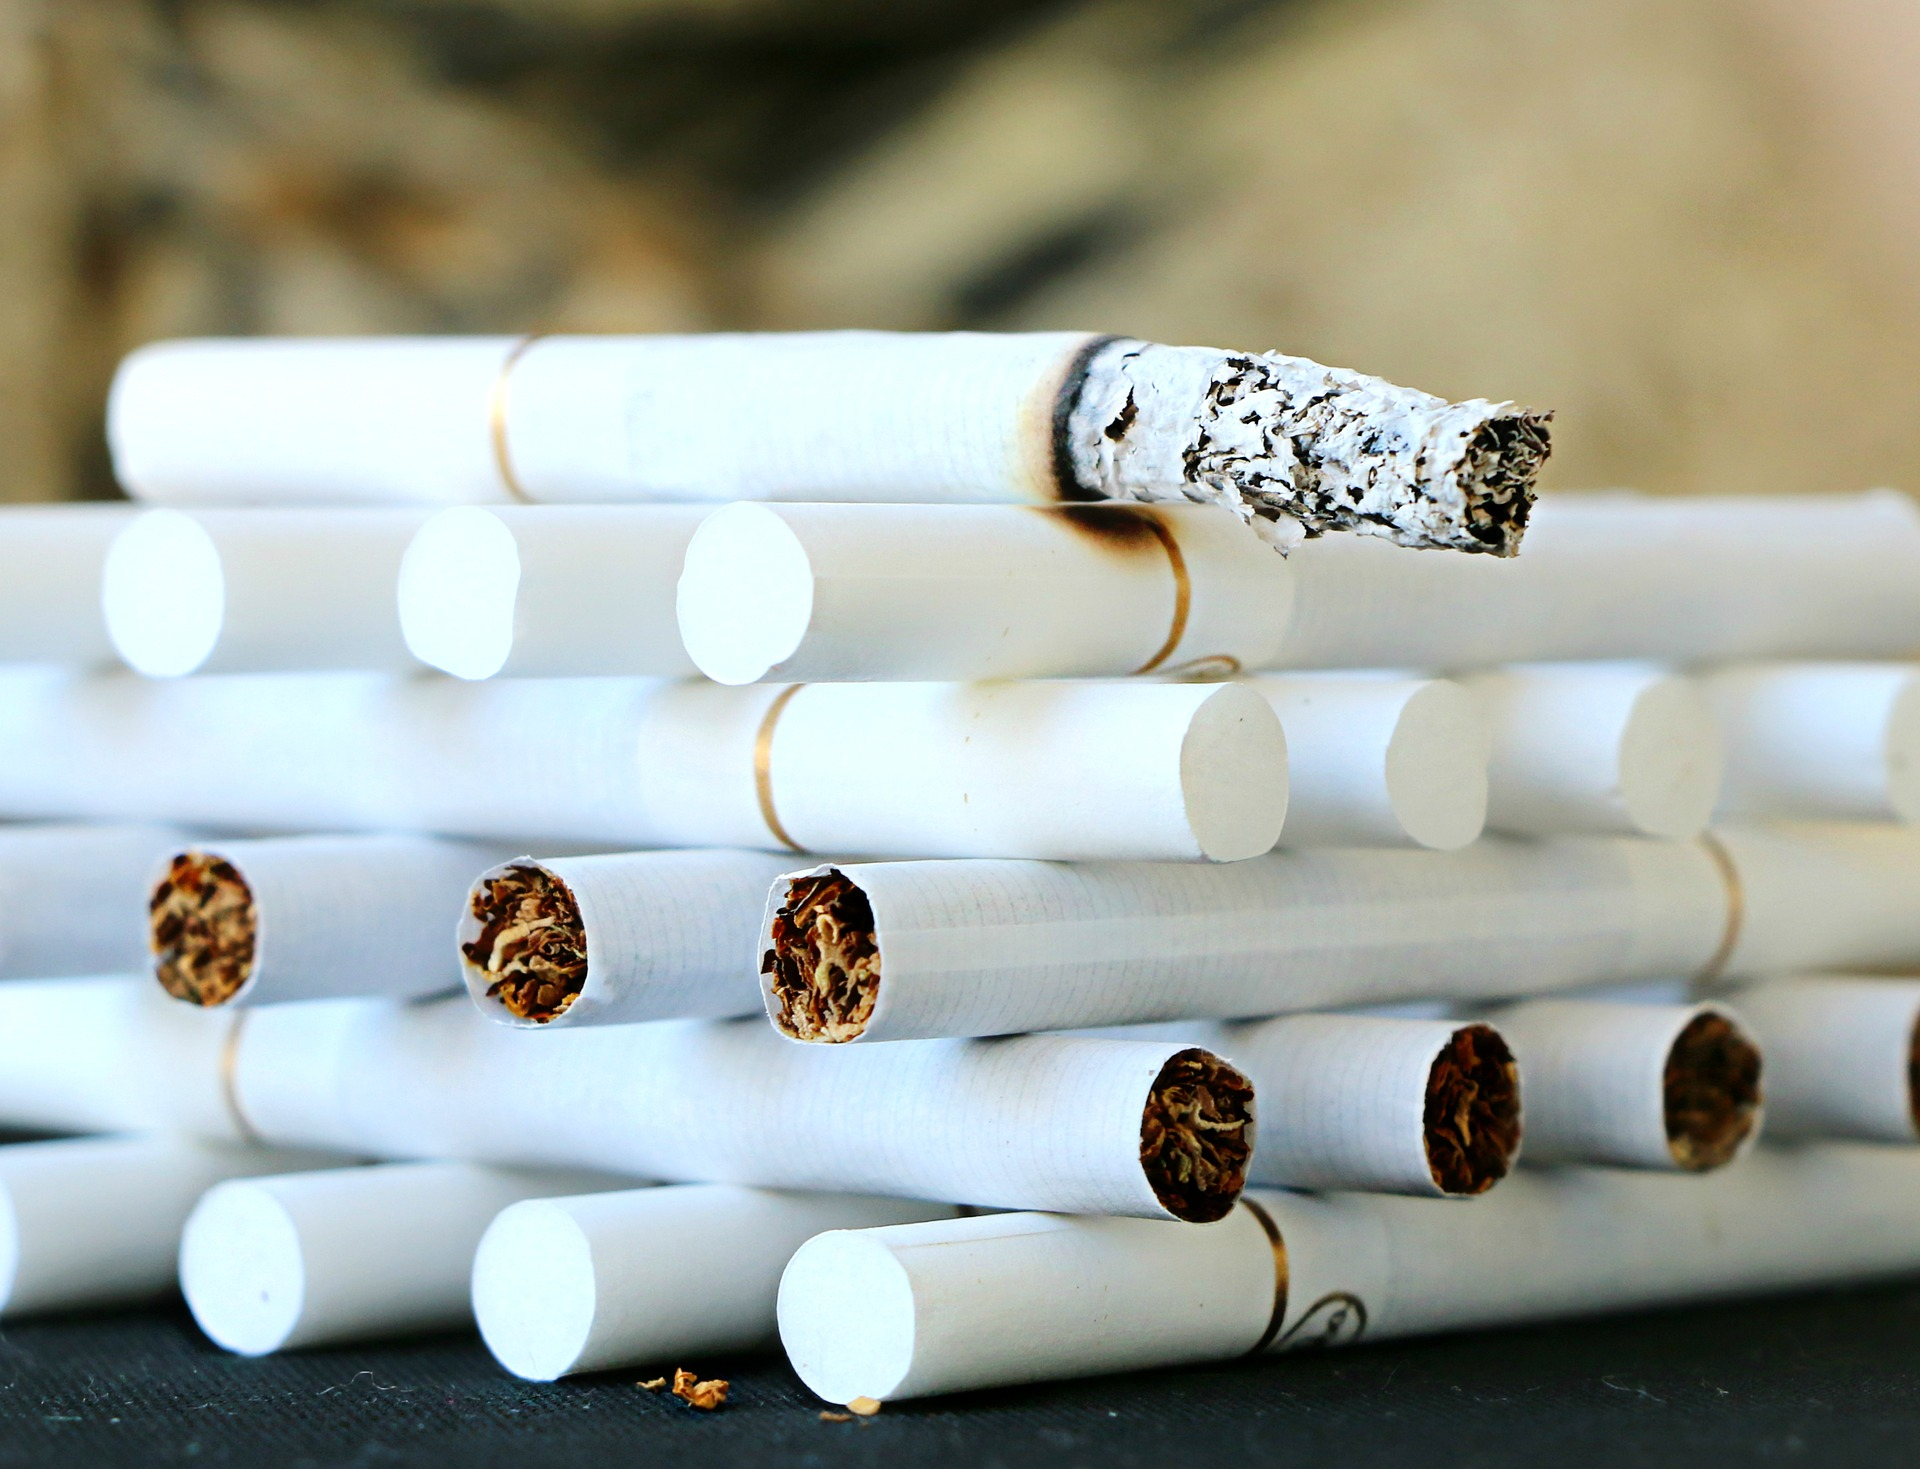 Cigarettes lined up like jenga blocks, to symbolise Andy Kane's new year's resolution to cut back on smoking